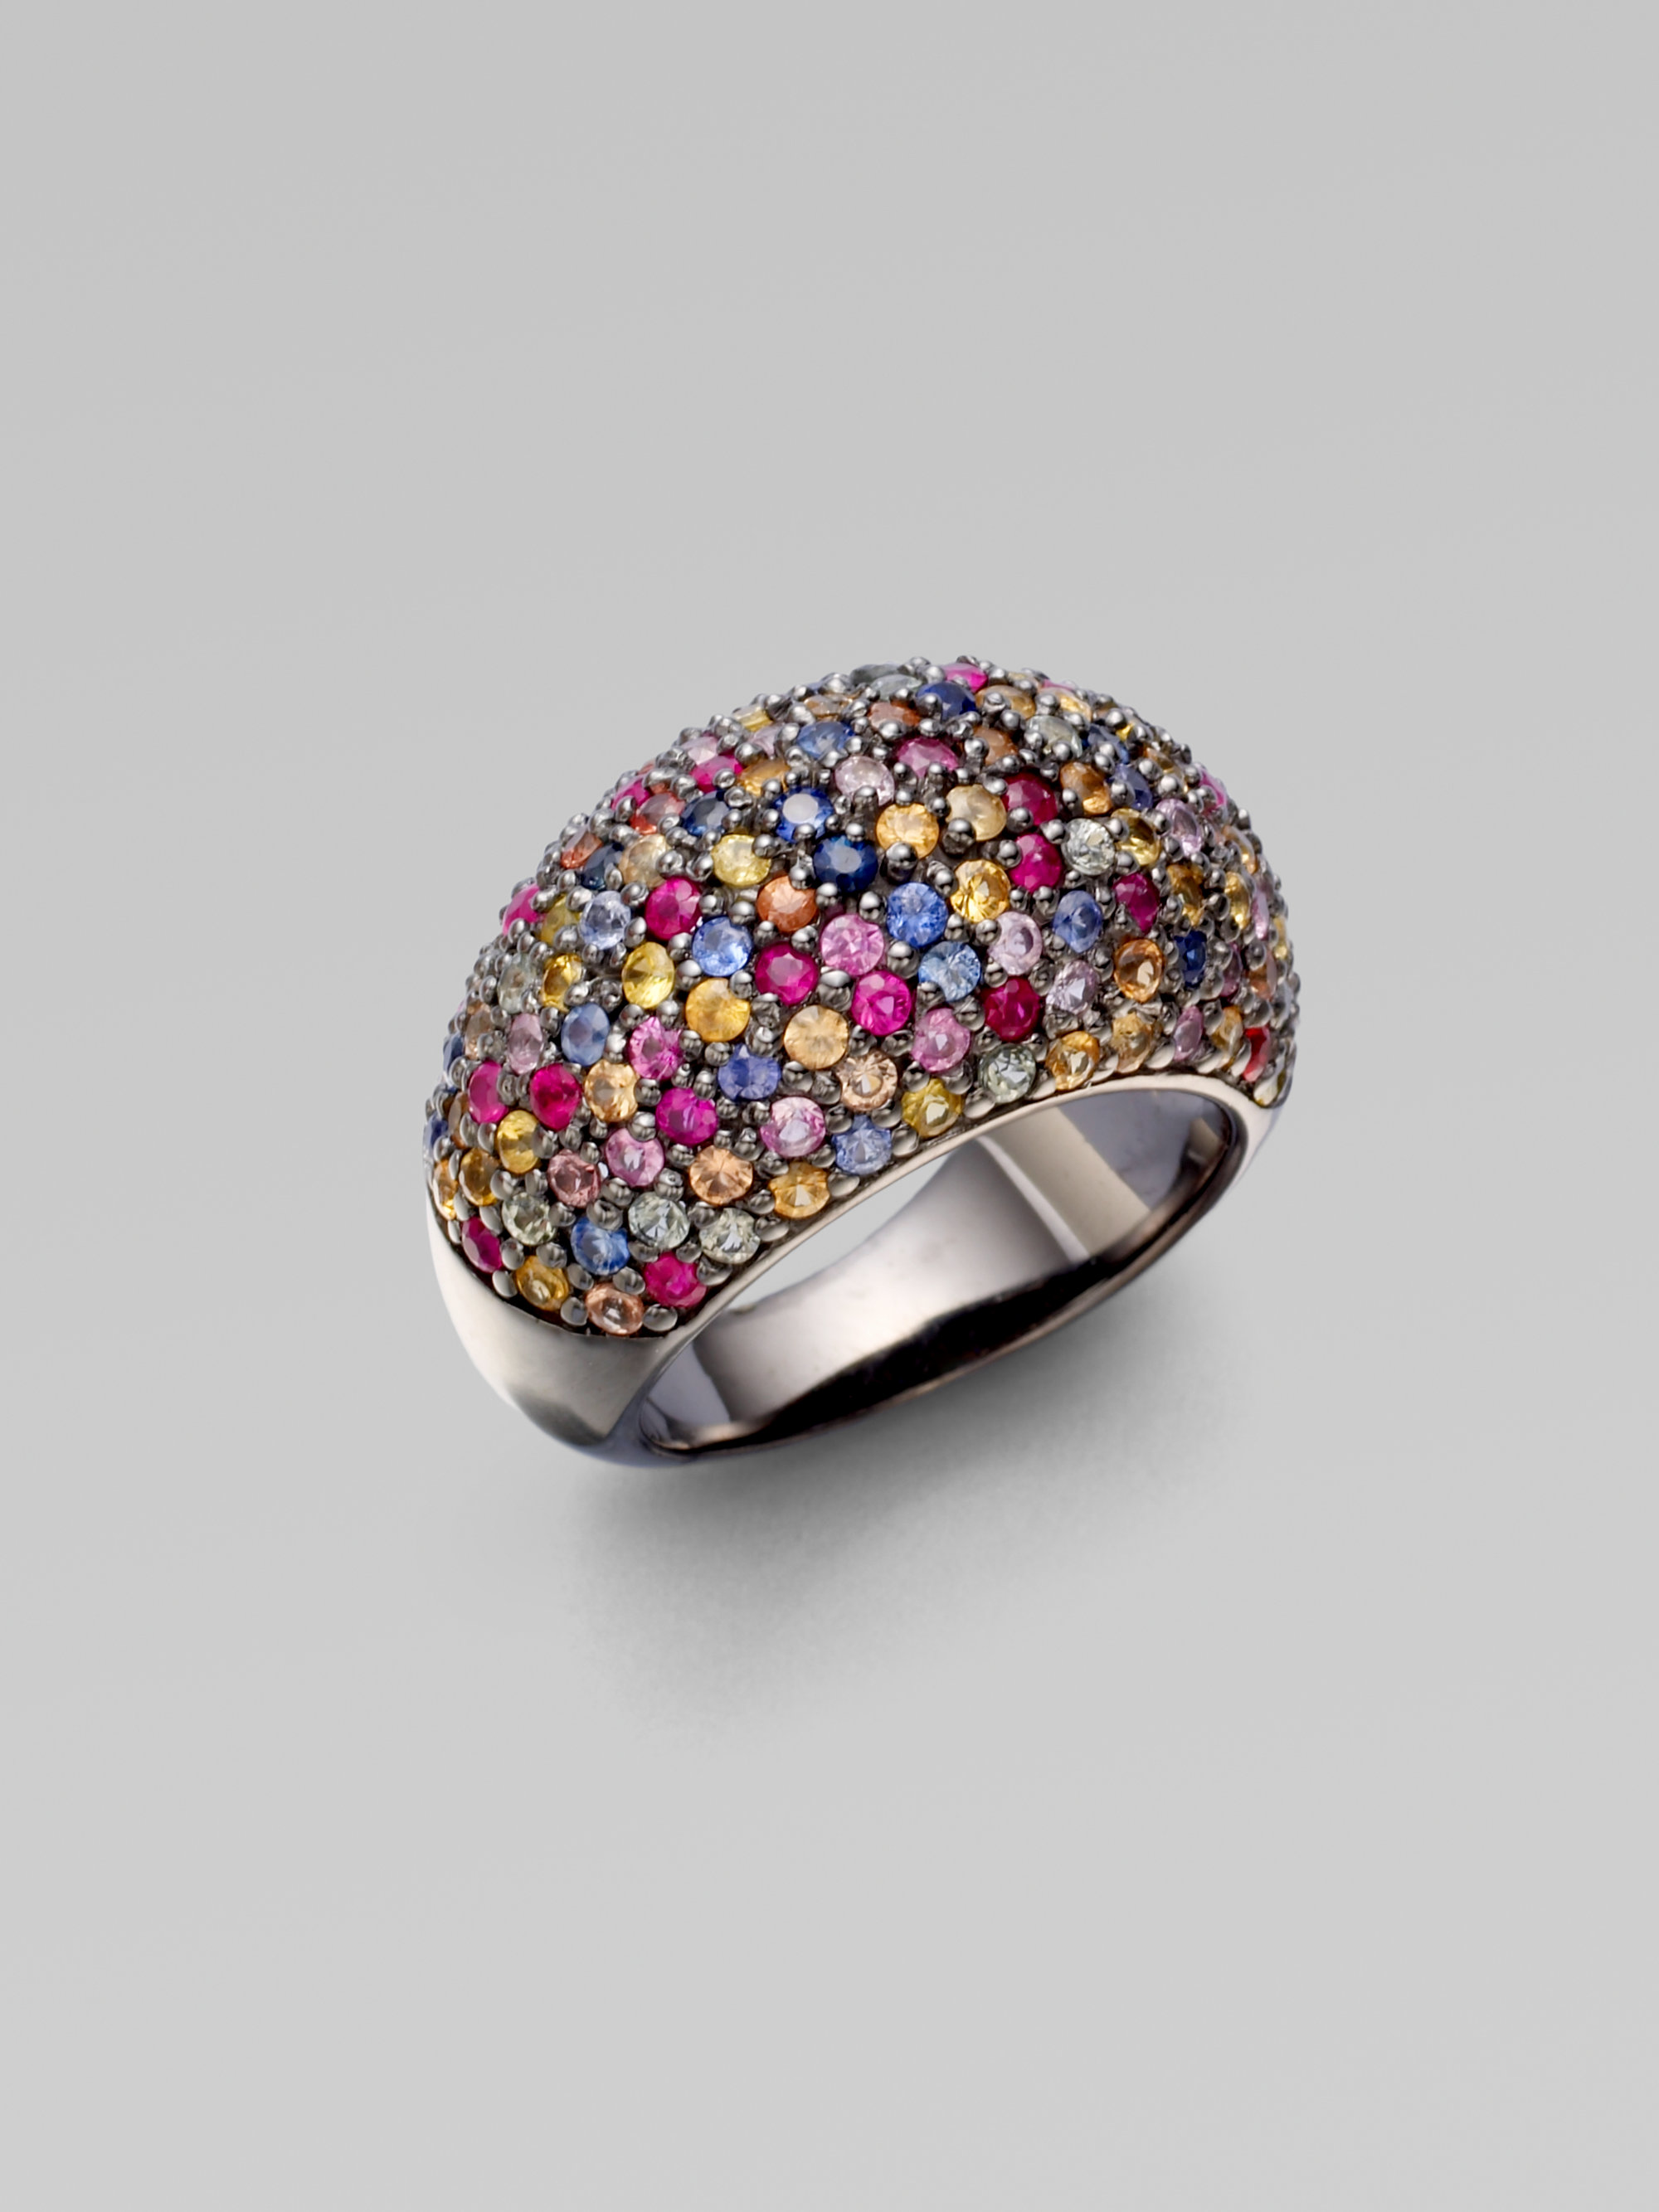 bulgari of collection at diamond multicolored peridot vintage a flower multicolor pin from earrings unique drop sapphire gold